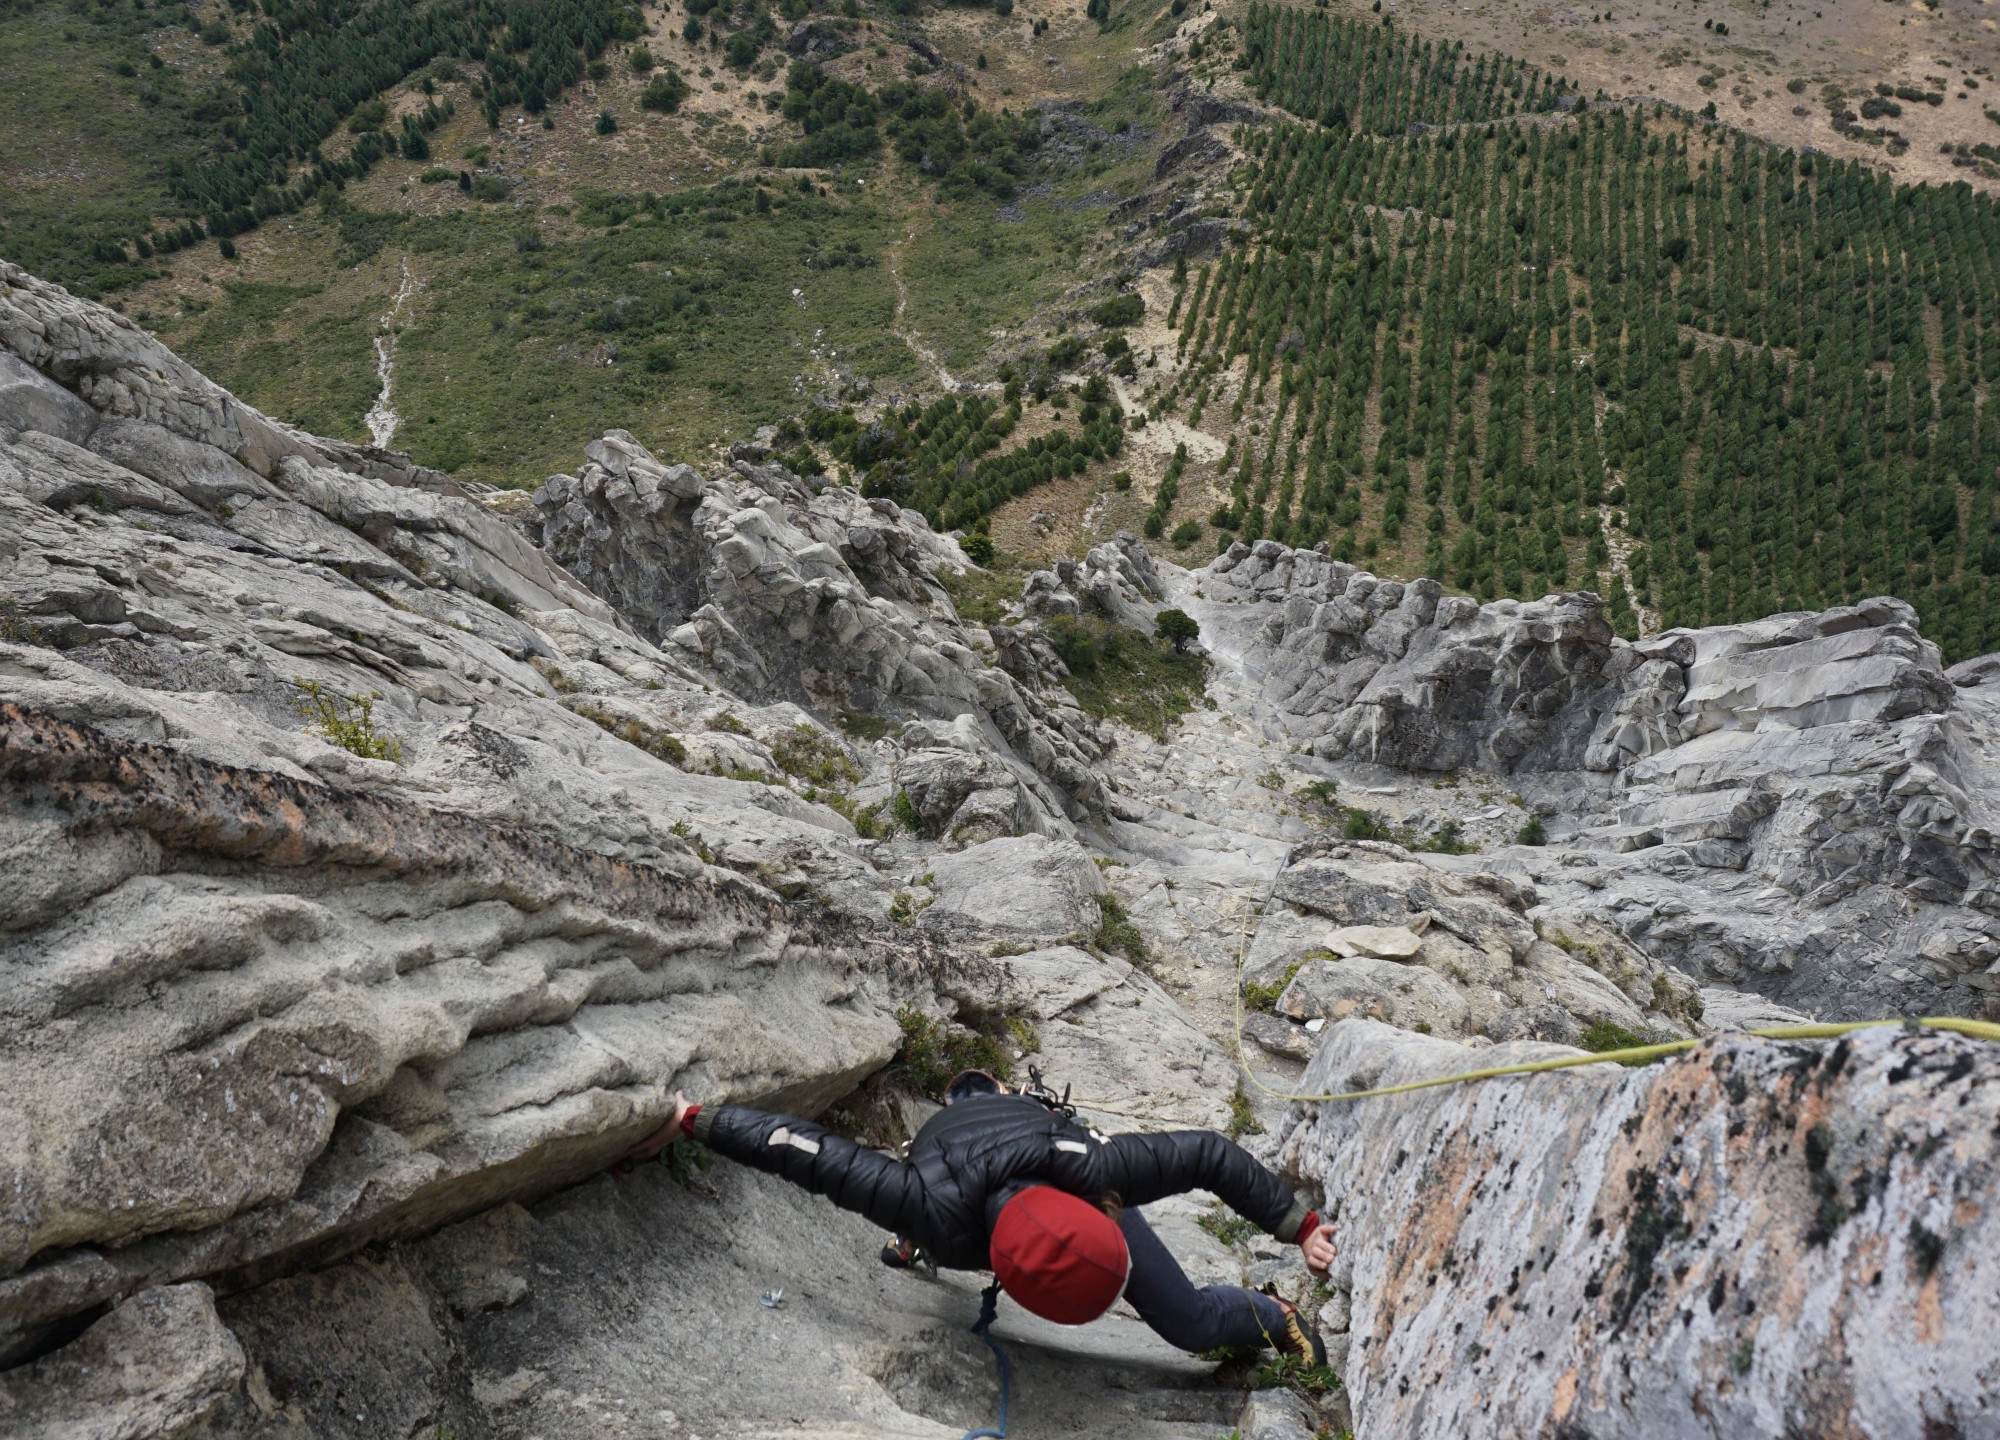 Topping out Cerro McKay via an 8 pitch sport climb